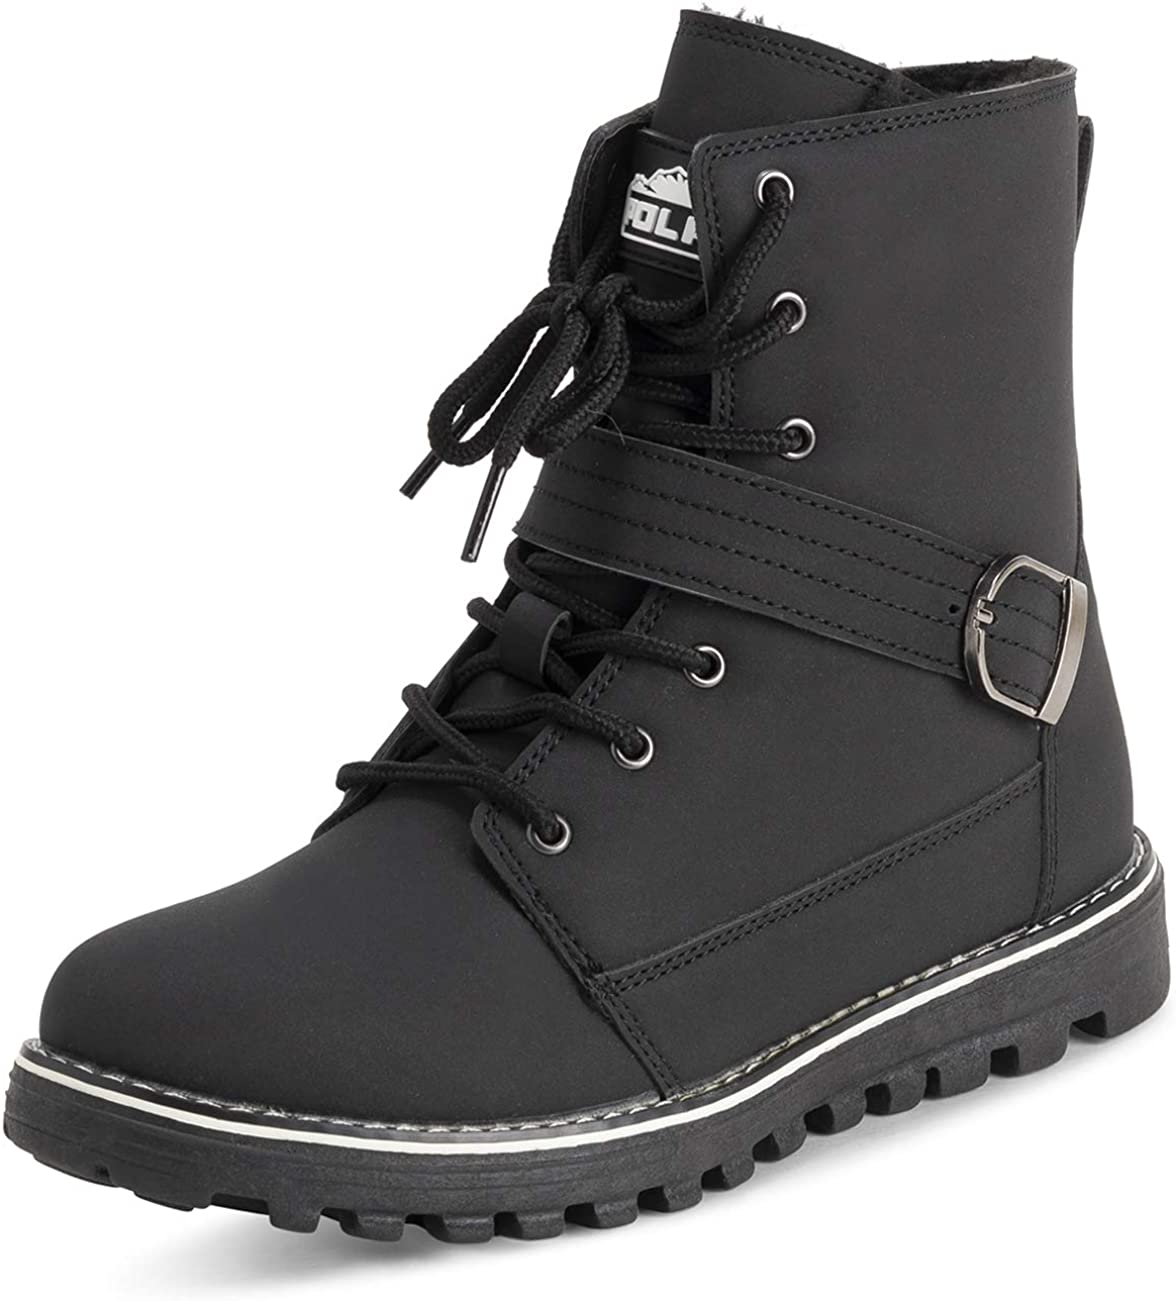 Polar Womens Memory Foam Biker Snow Boots Faux Fur Lined Welted Rubber Outsole Thermal Shoes